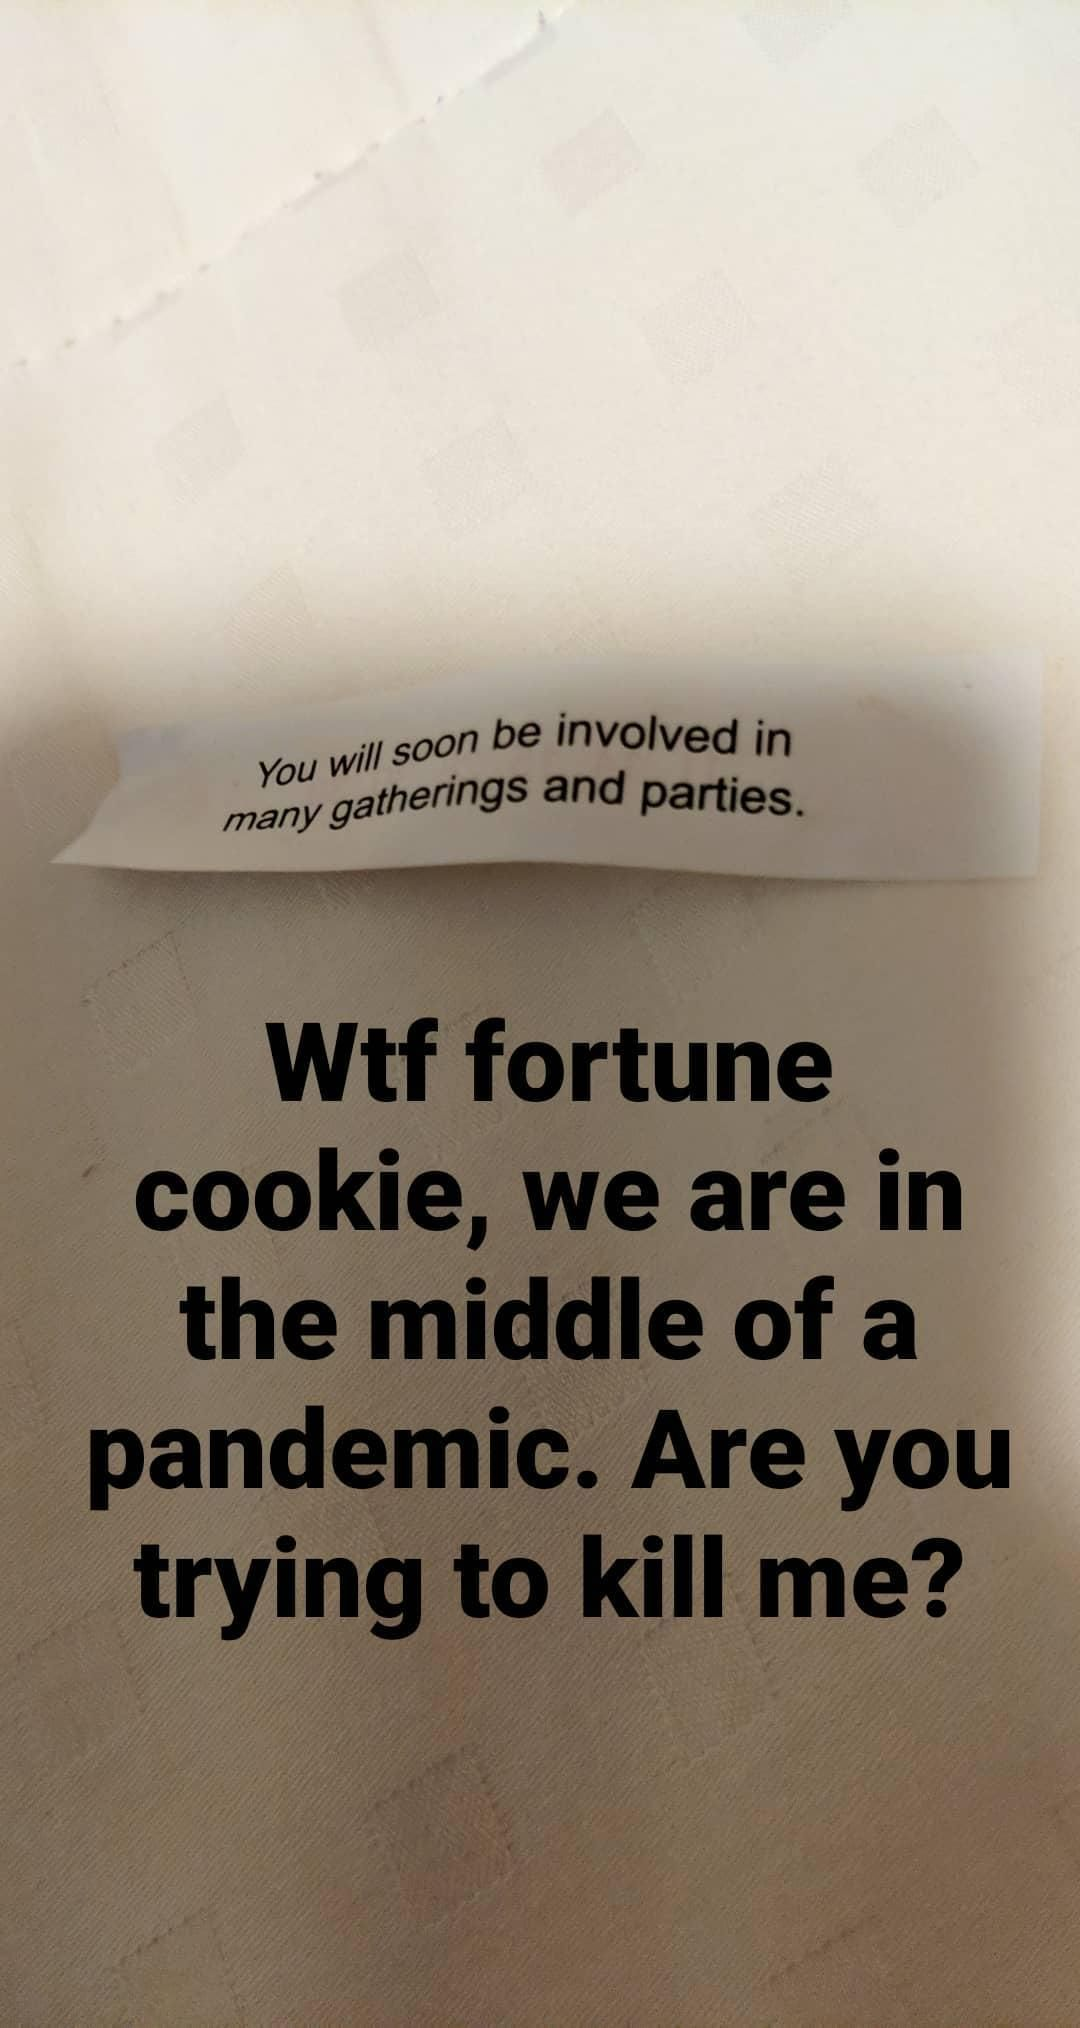 My fortune cookie is trying to kill me